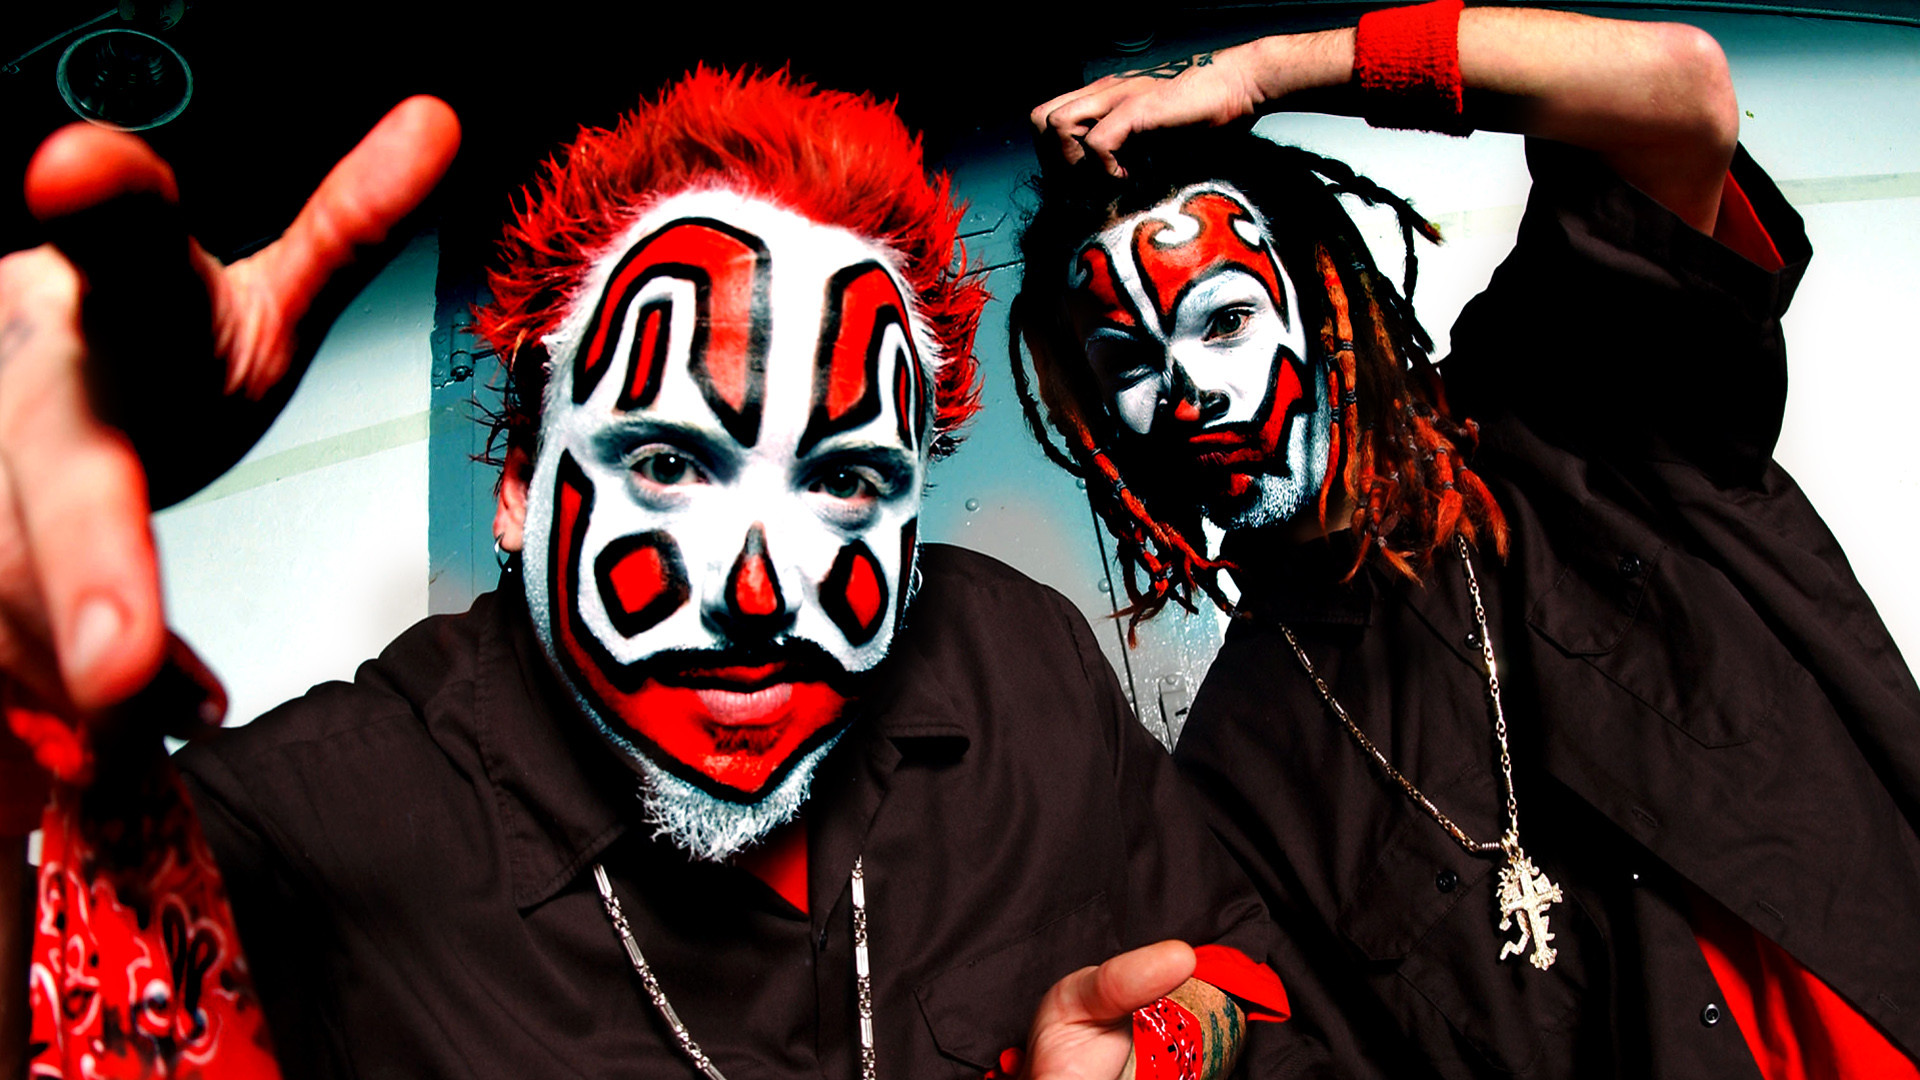 1920x1080 Free Insane Clown Posse Wallpapers - Wallpaper Cave | Beautiful Wallpapers  | Pinterest | Insane clown posse and Wallpaper